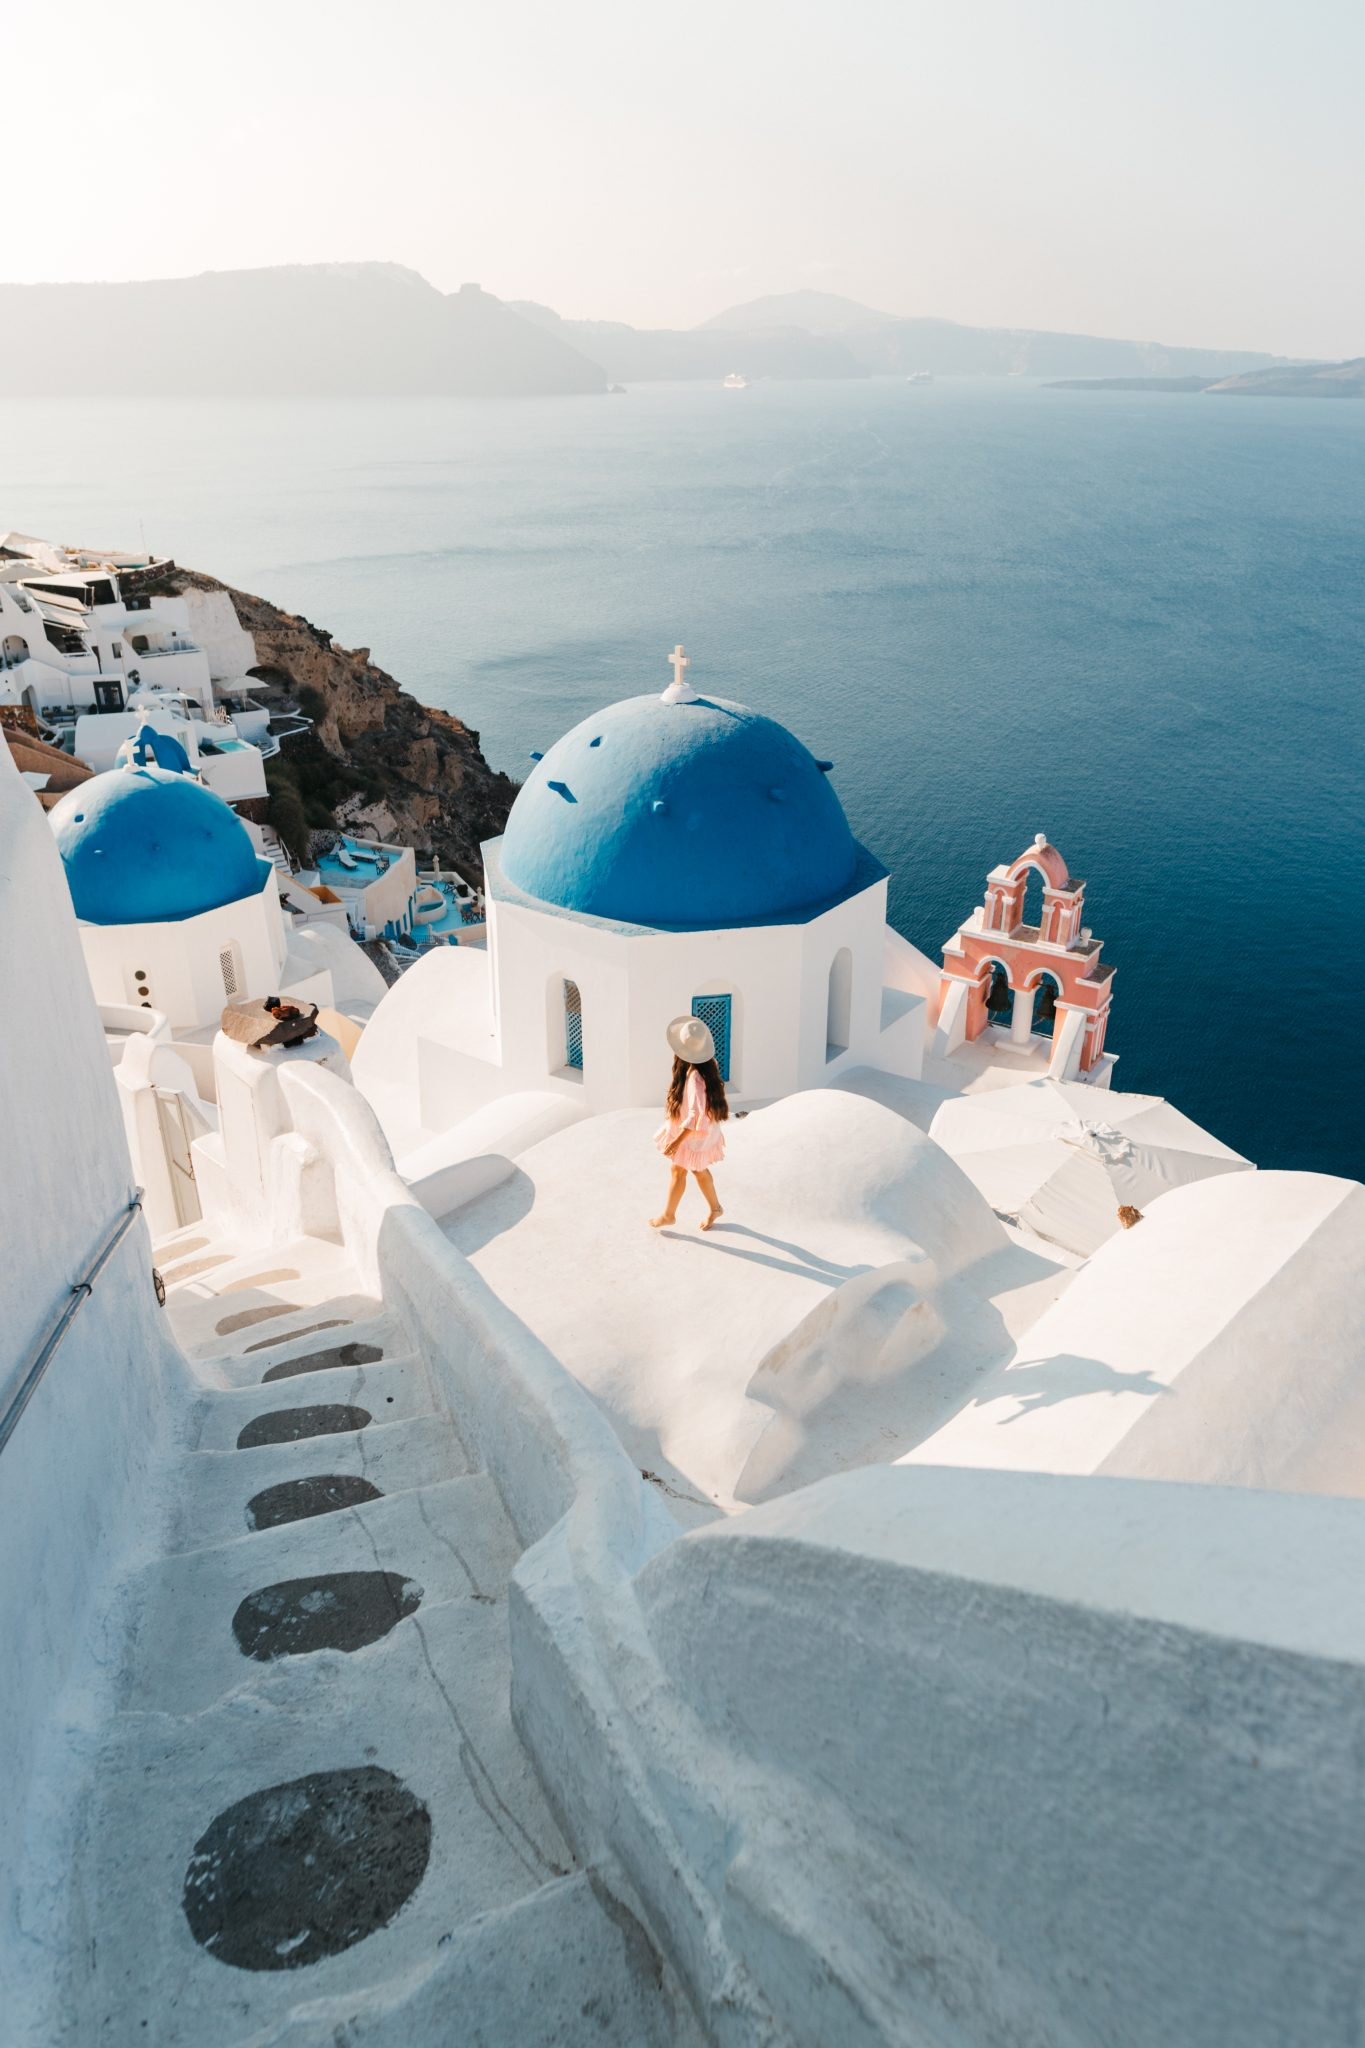 The 5 Best Photo Locations in Santorini, Greece - Allie M. Taylor